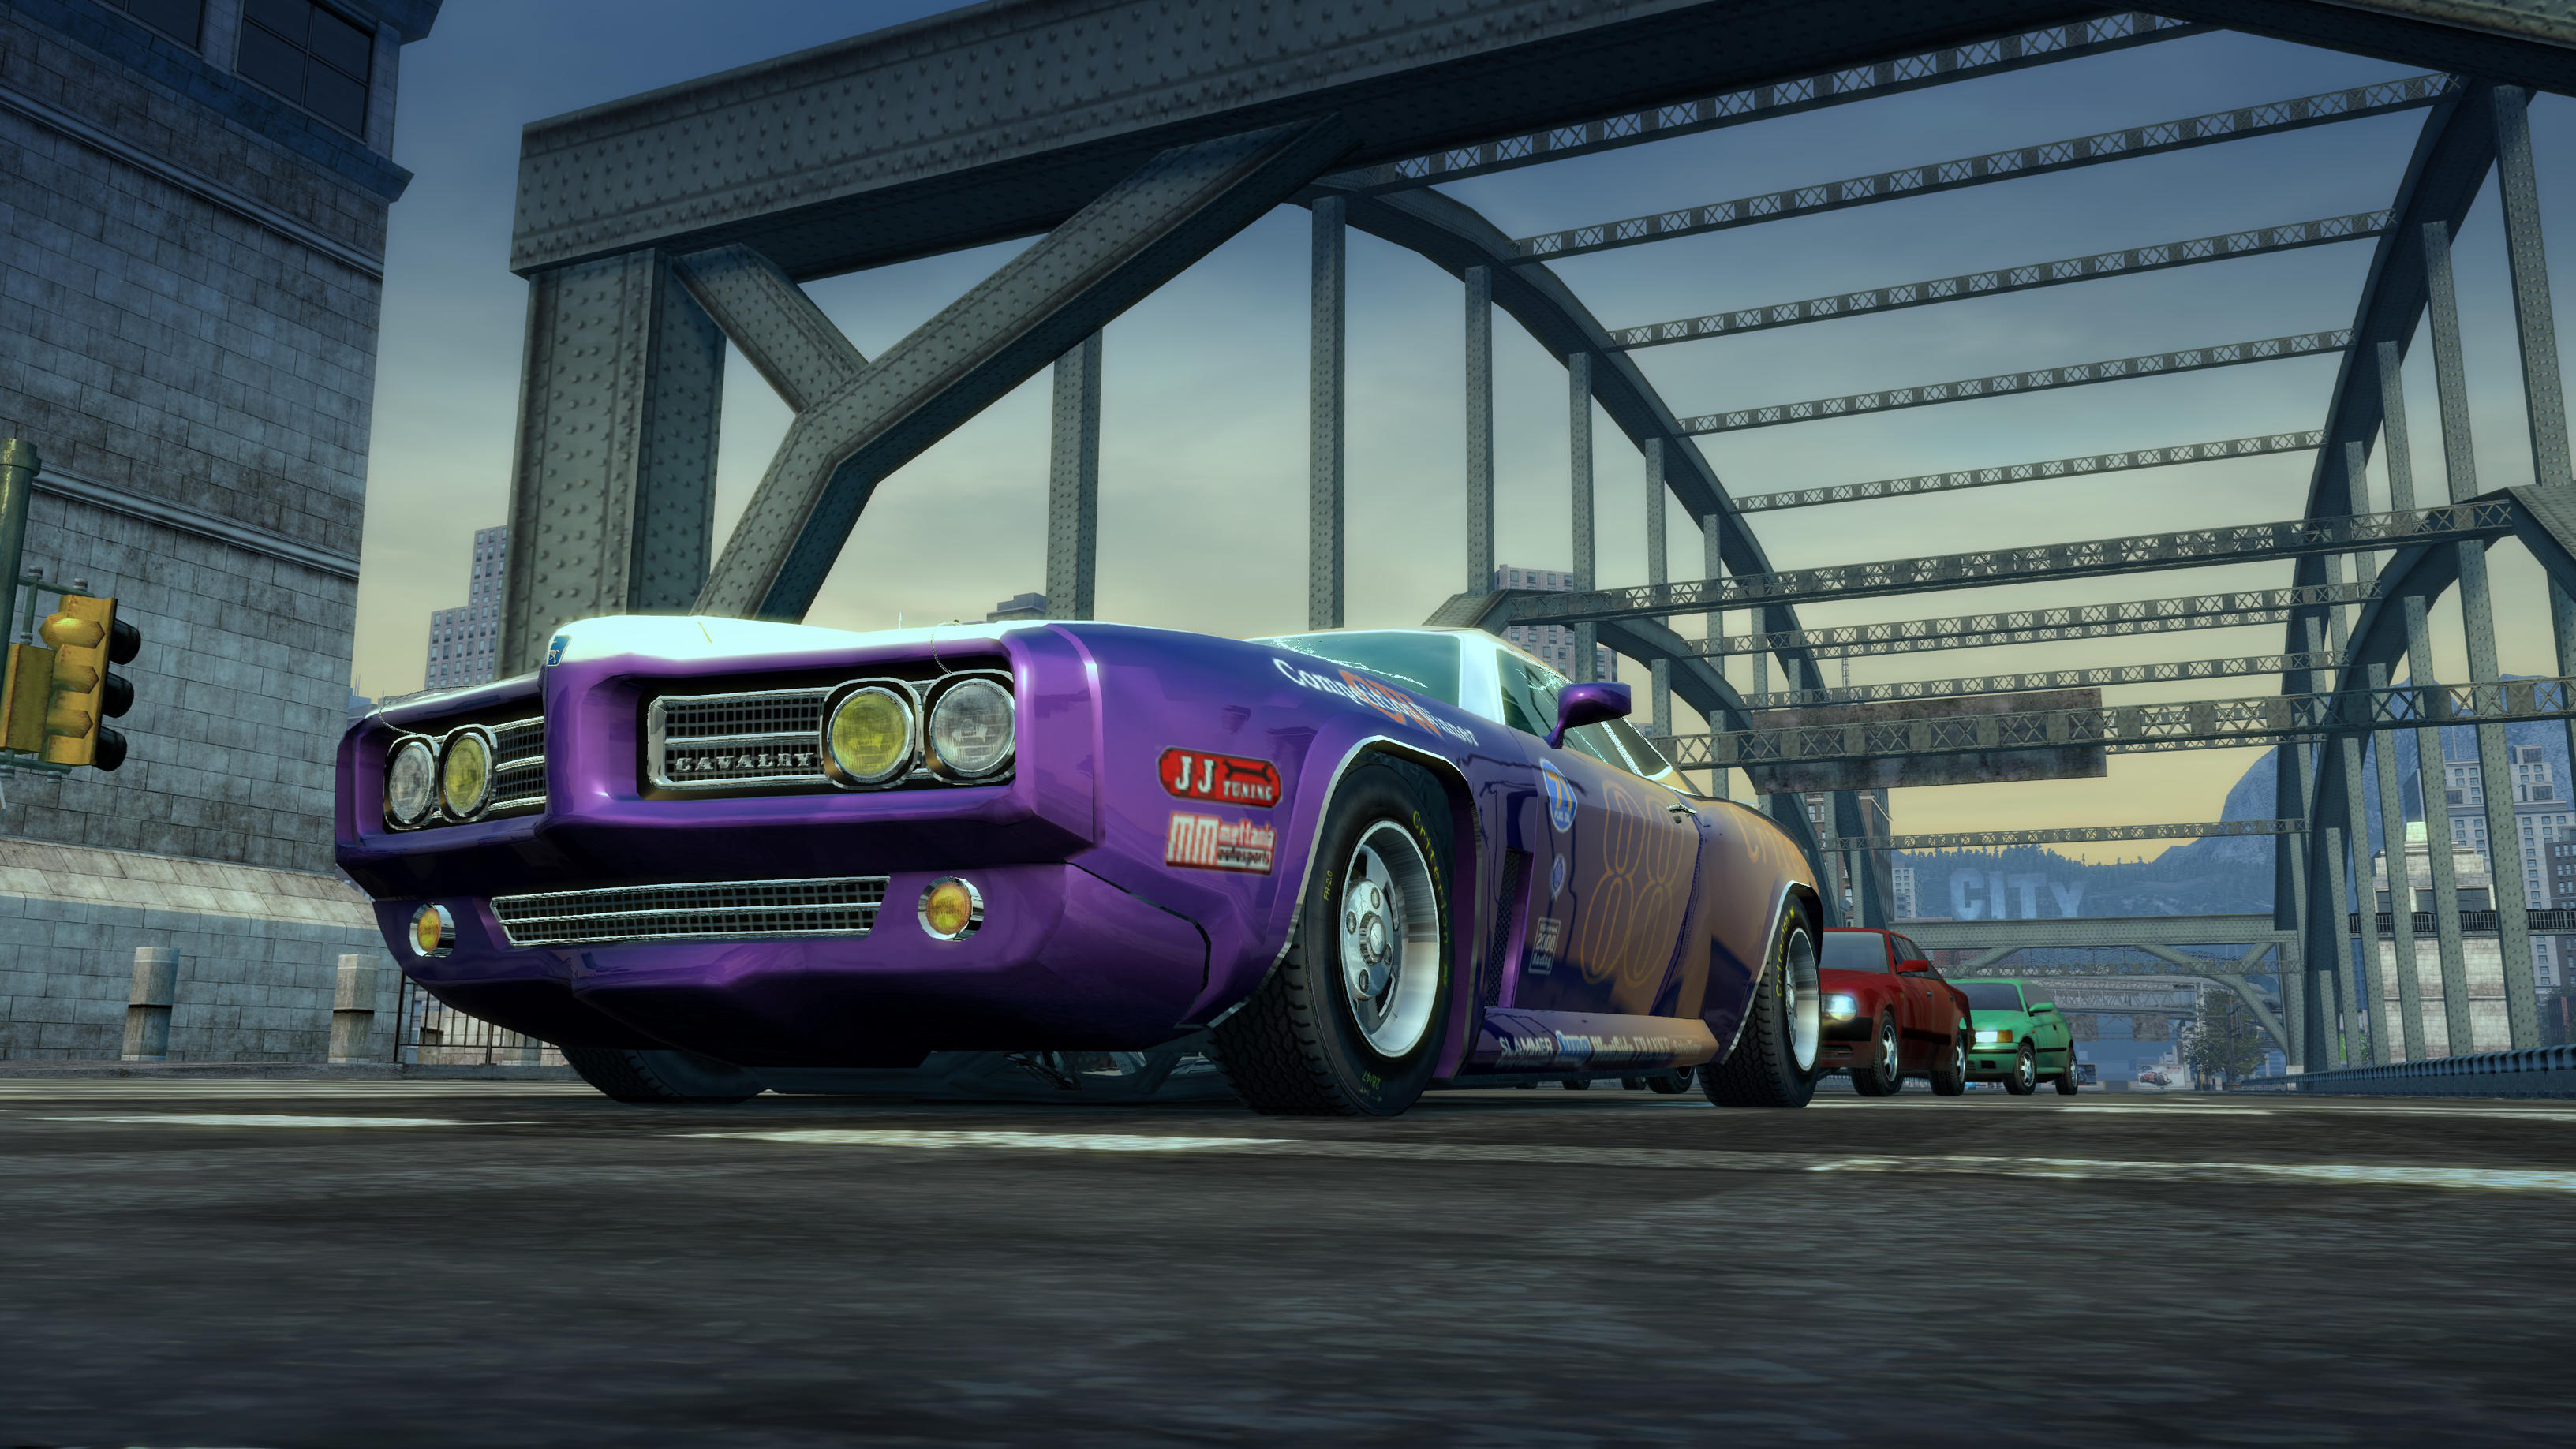 Burnout Paradise Muscle Car Purple By Rosestarlightglimmer On Deviantart